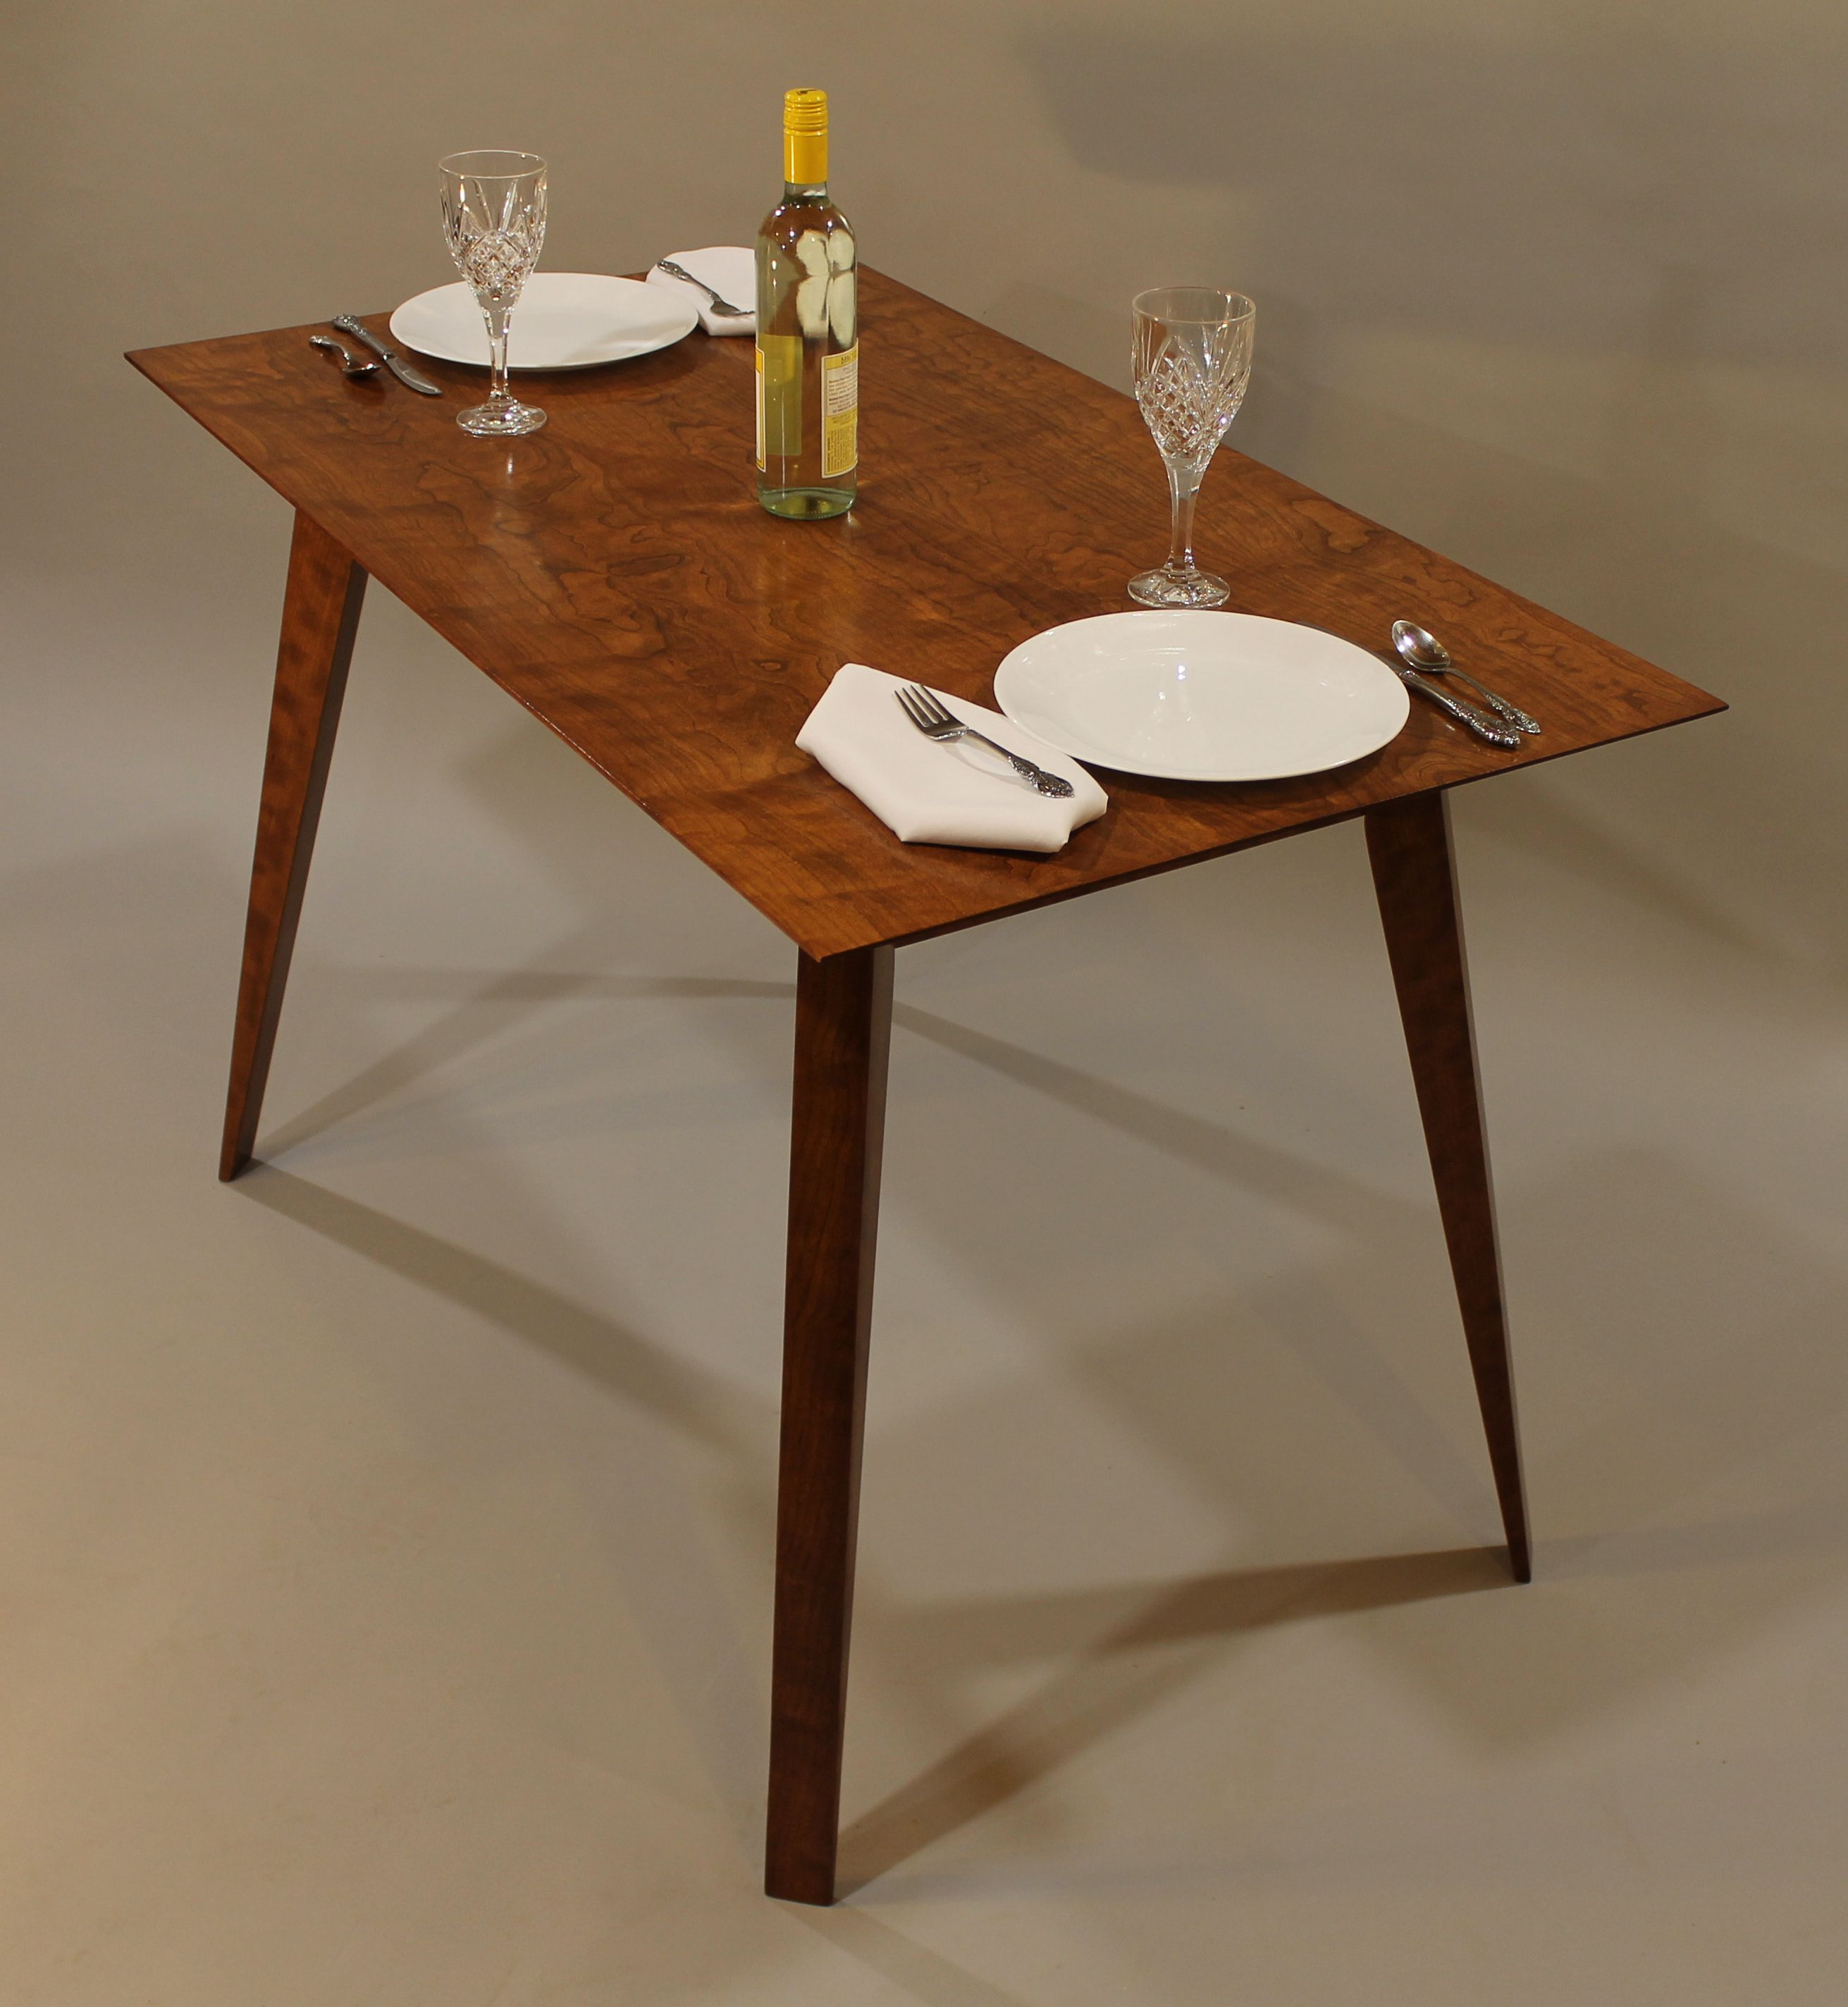 Hand Crafted Dining Table For Small Spaces by Paul Carlino ...